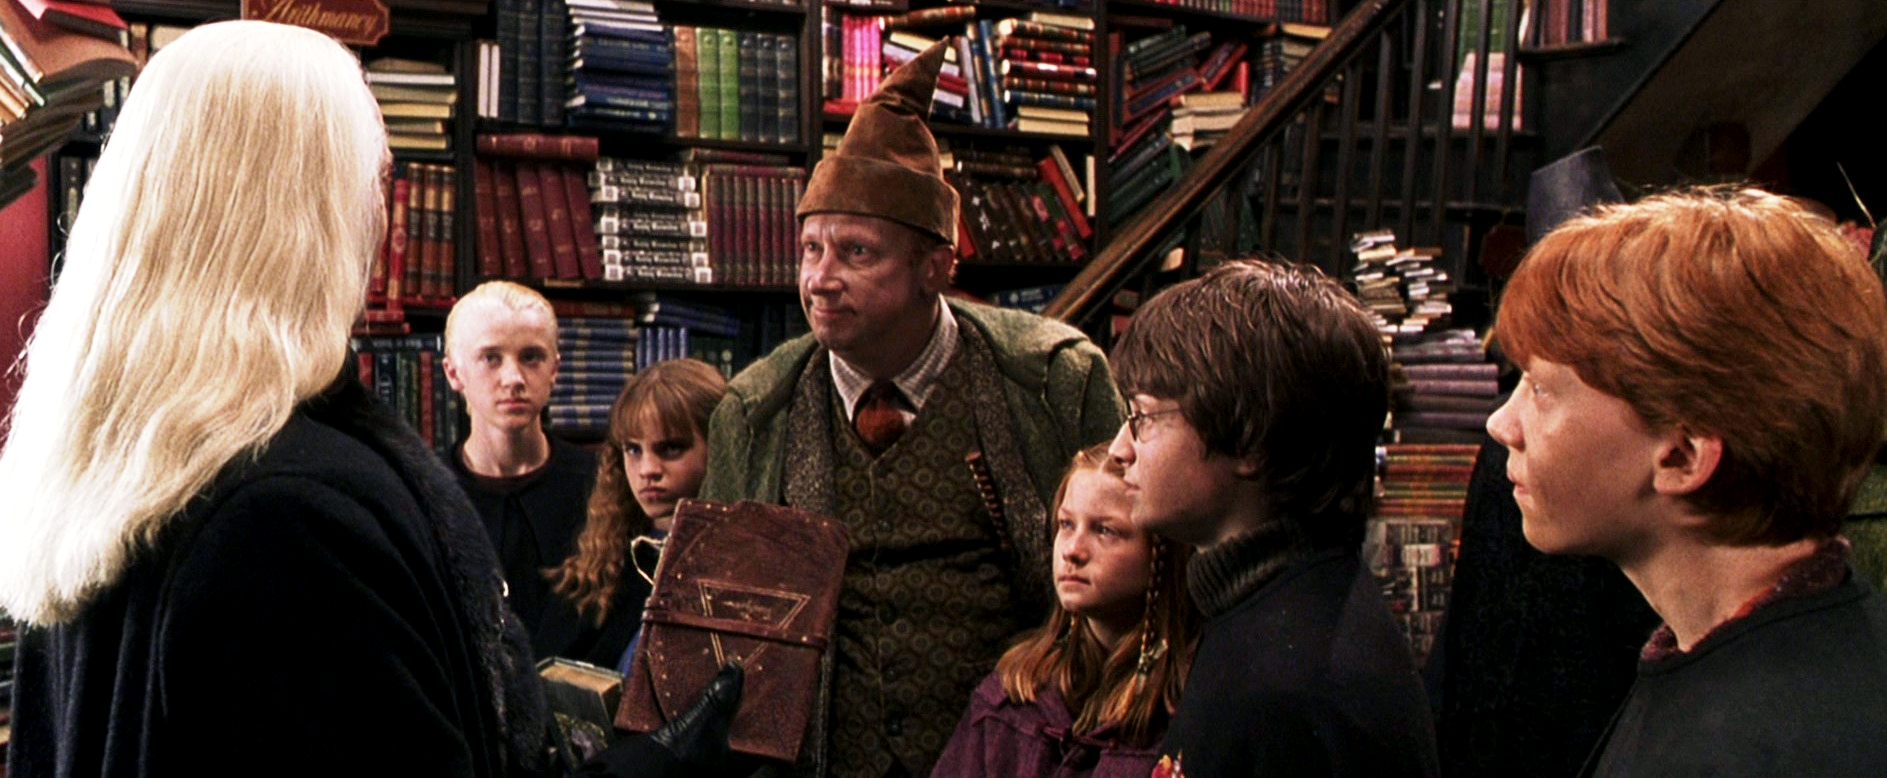 The Weasleys facts